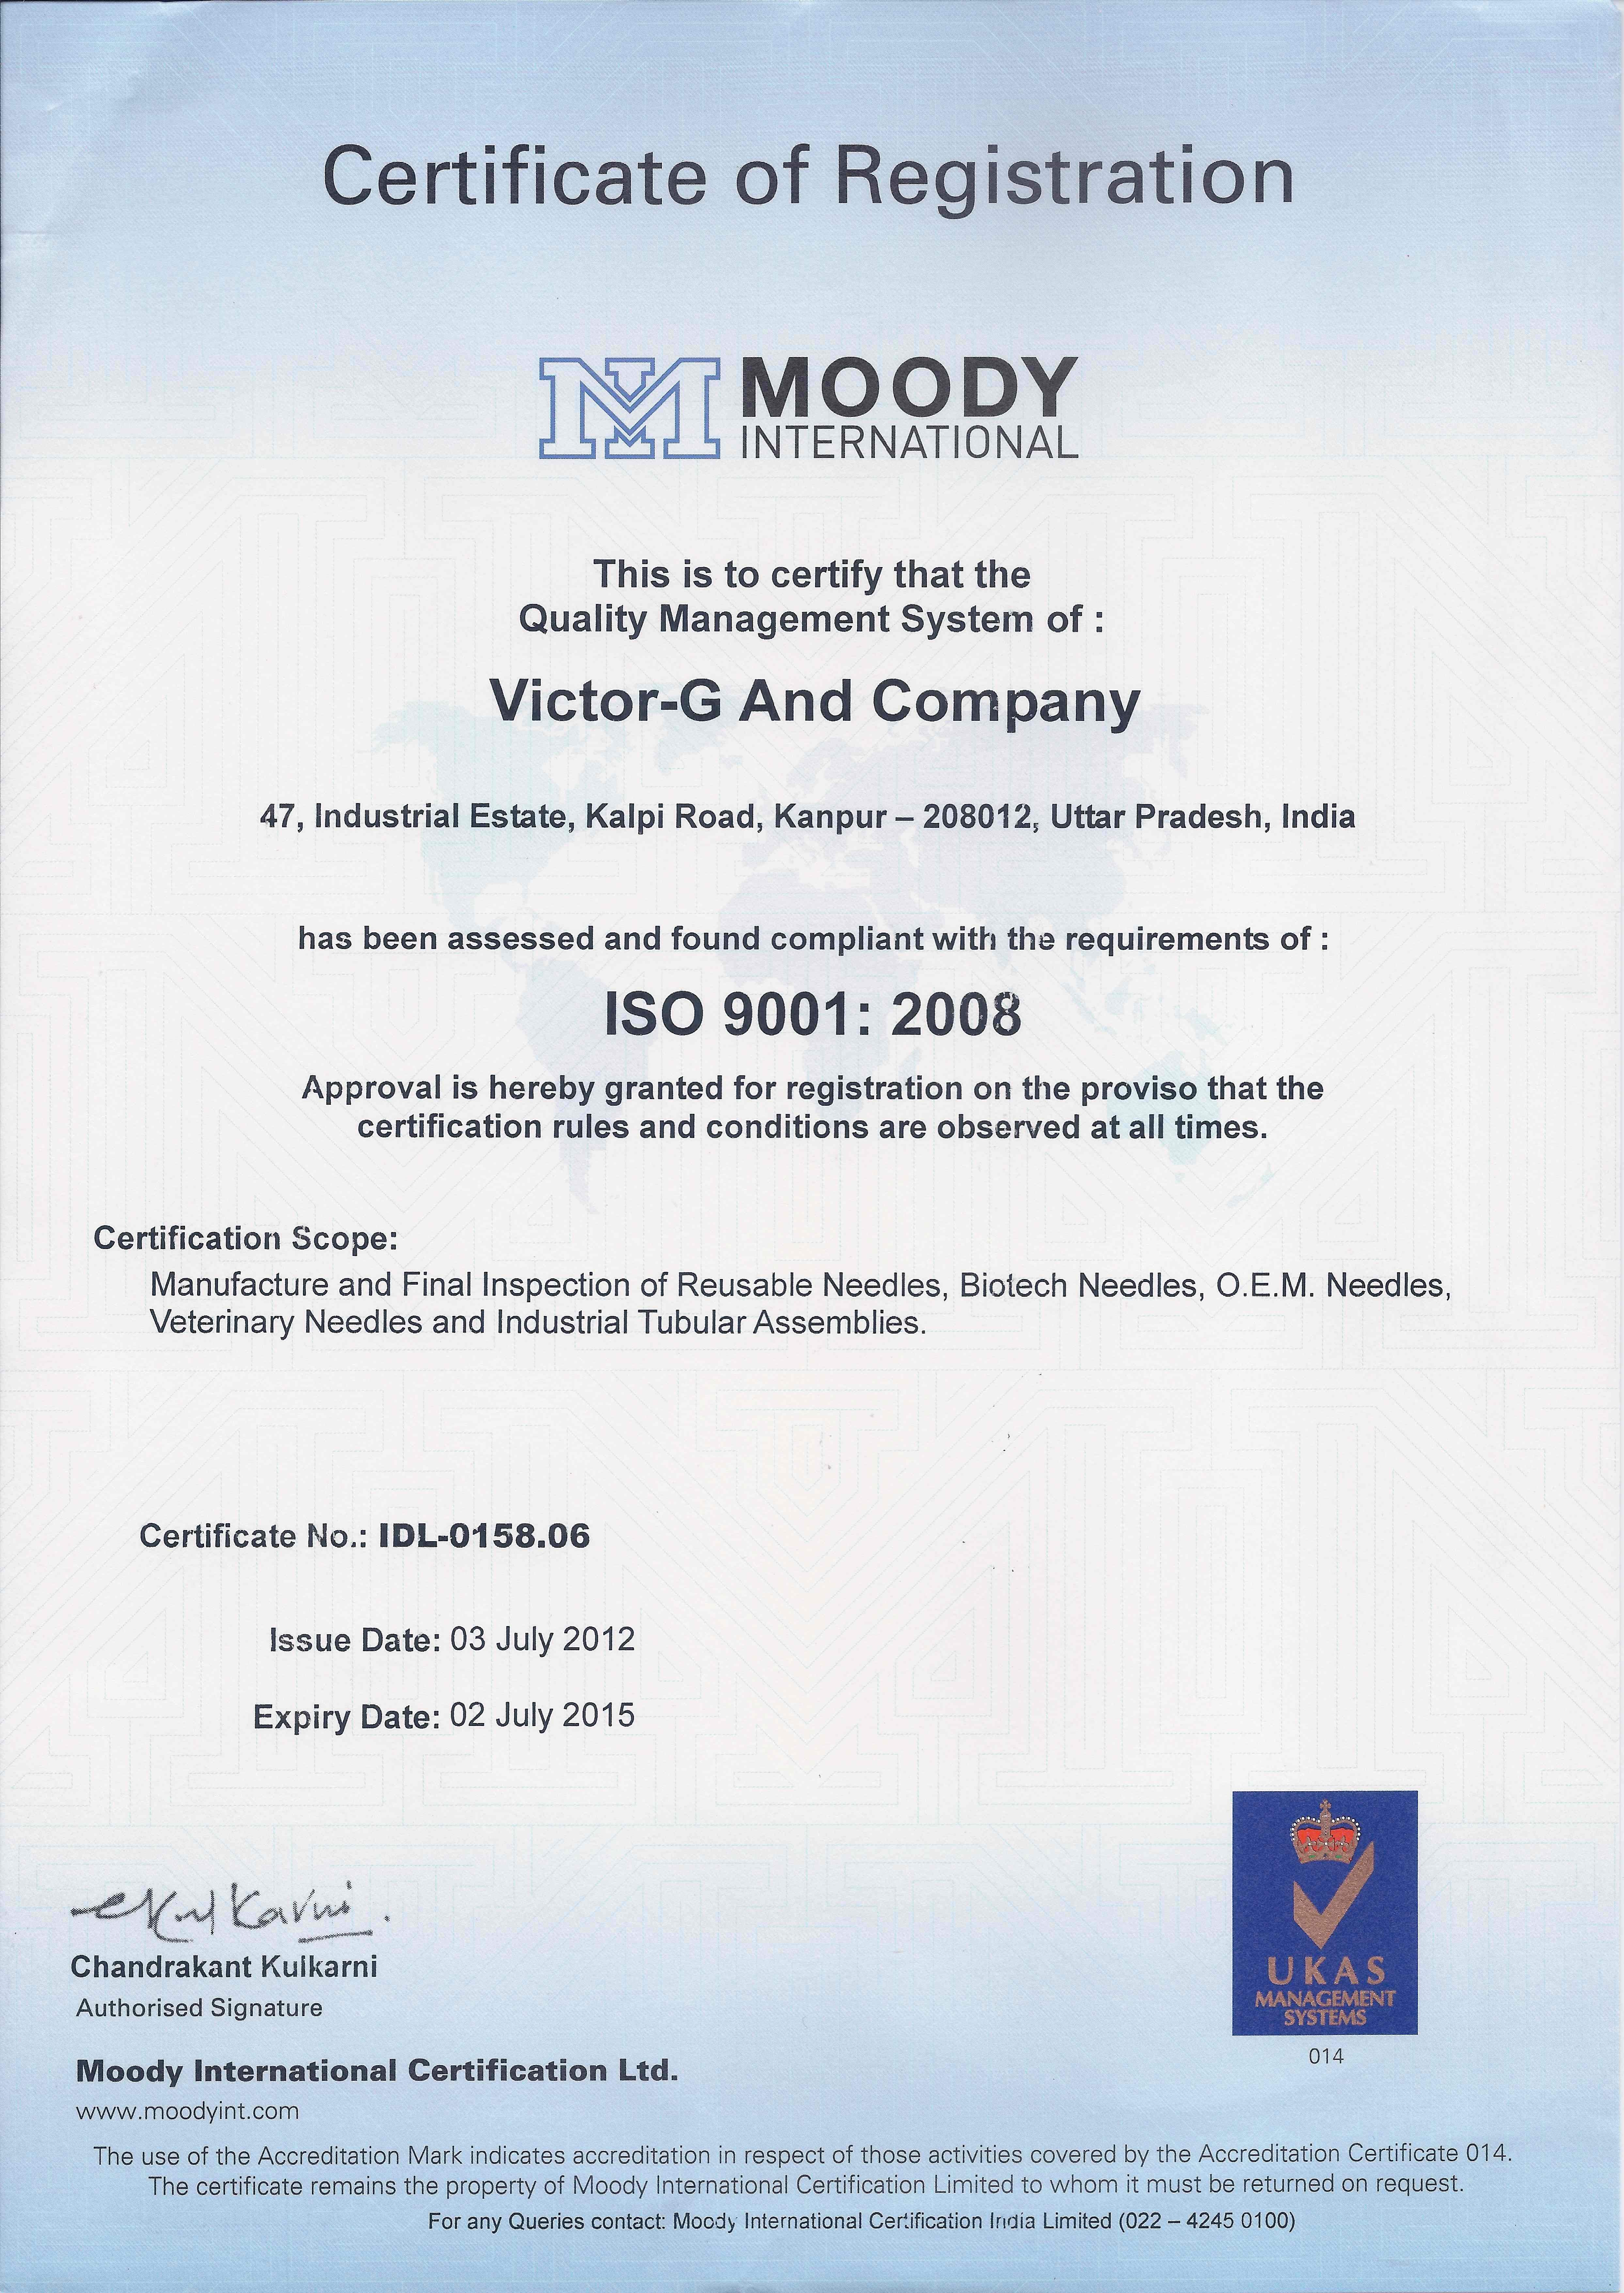 Iso 90012008 certificate for manufacture and final inspection of iso 90012008 certificate for manufacture and final inspection of reusable needles bio tech needles oem needles veterinary needles and industrial 1betcityfo Gallery